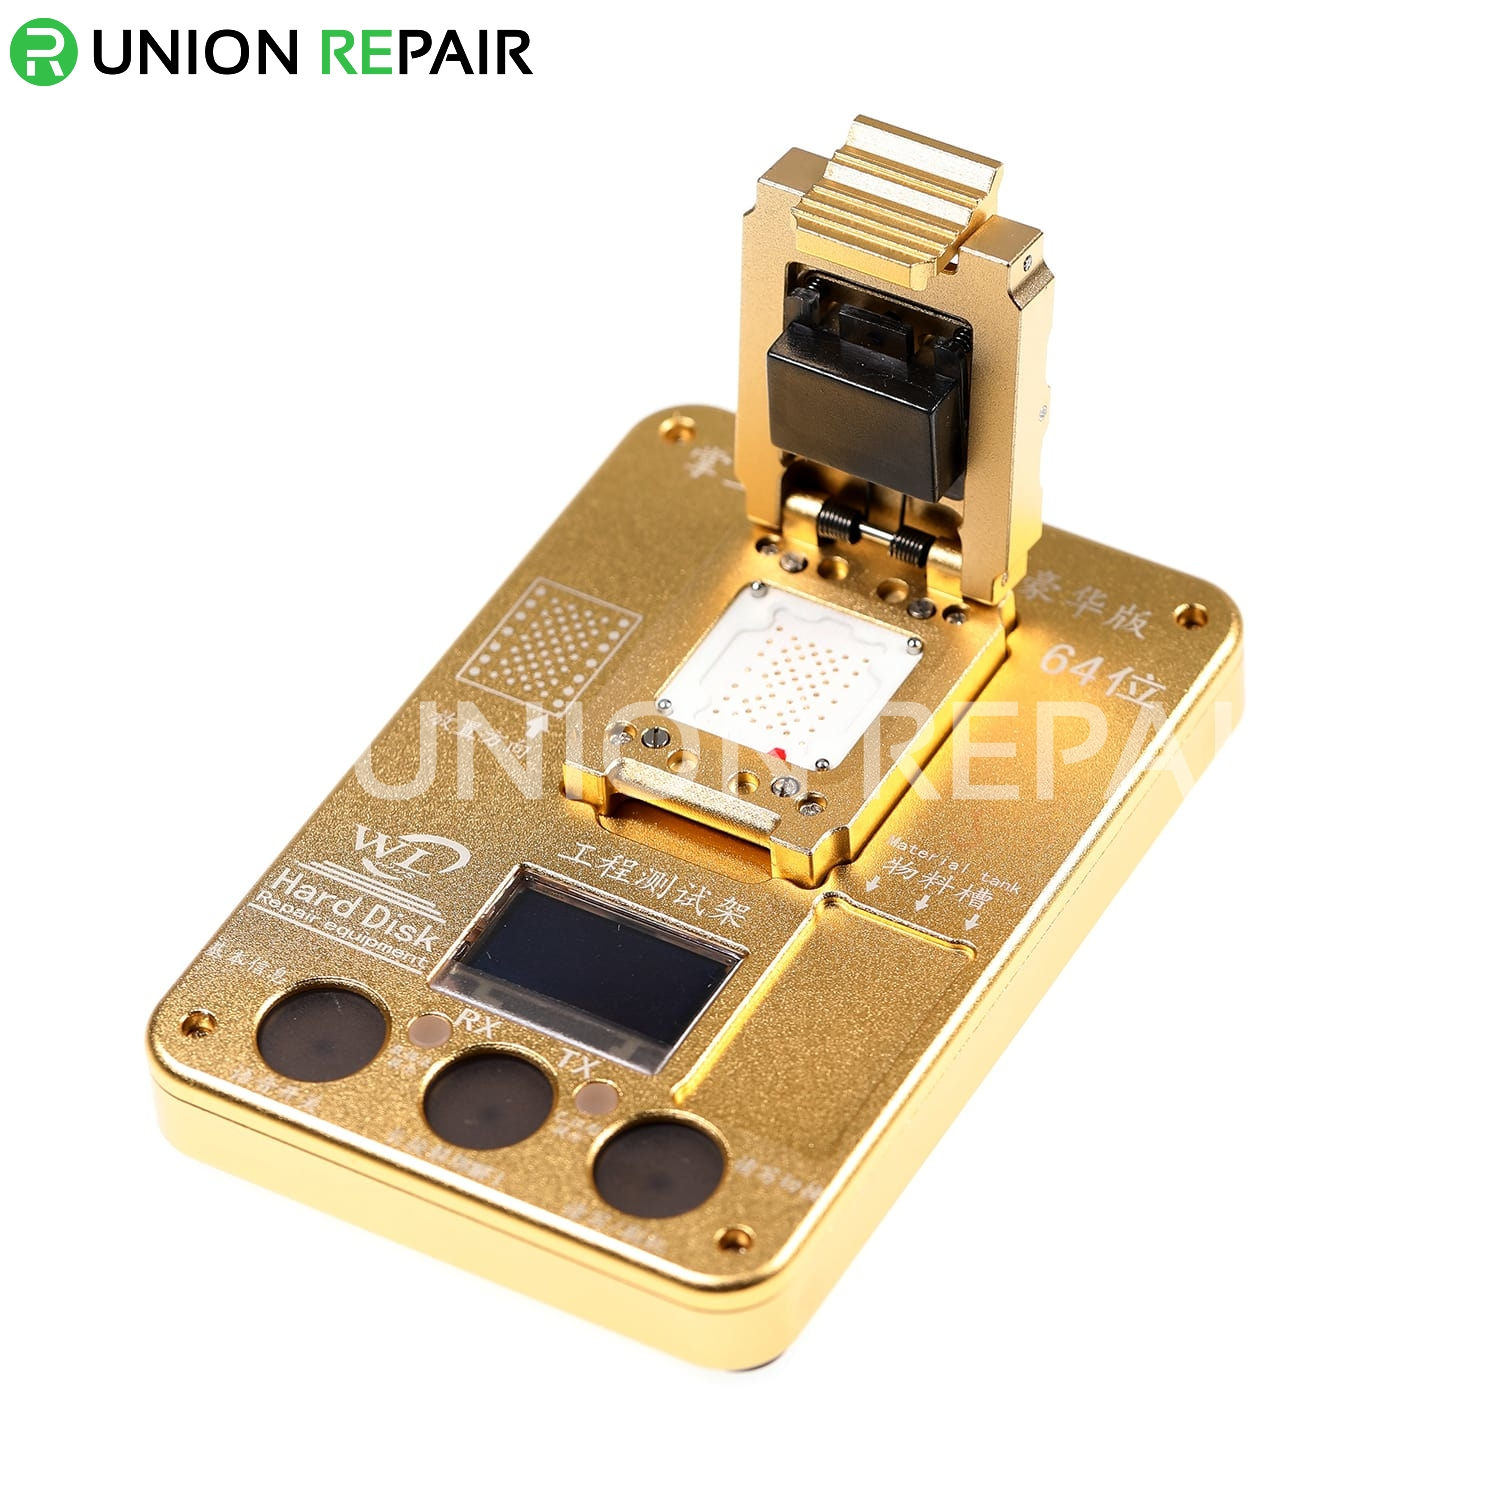 WL 64Bit Nand Test Fixture Repair For iPhone 5S 6 6P iPad